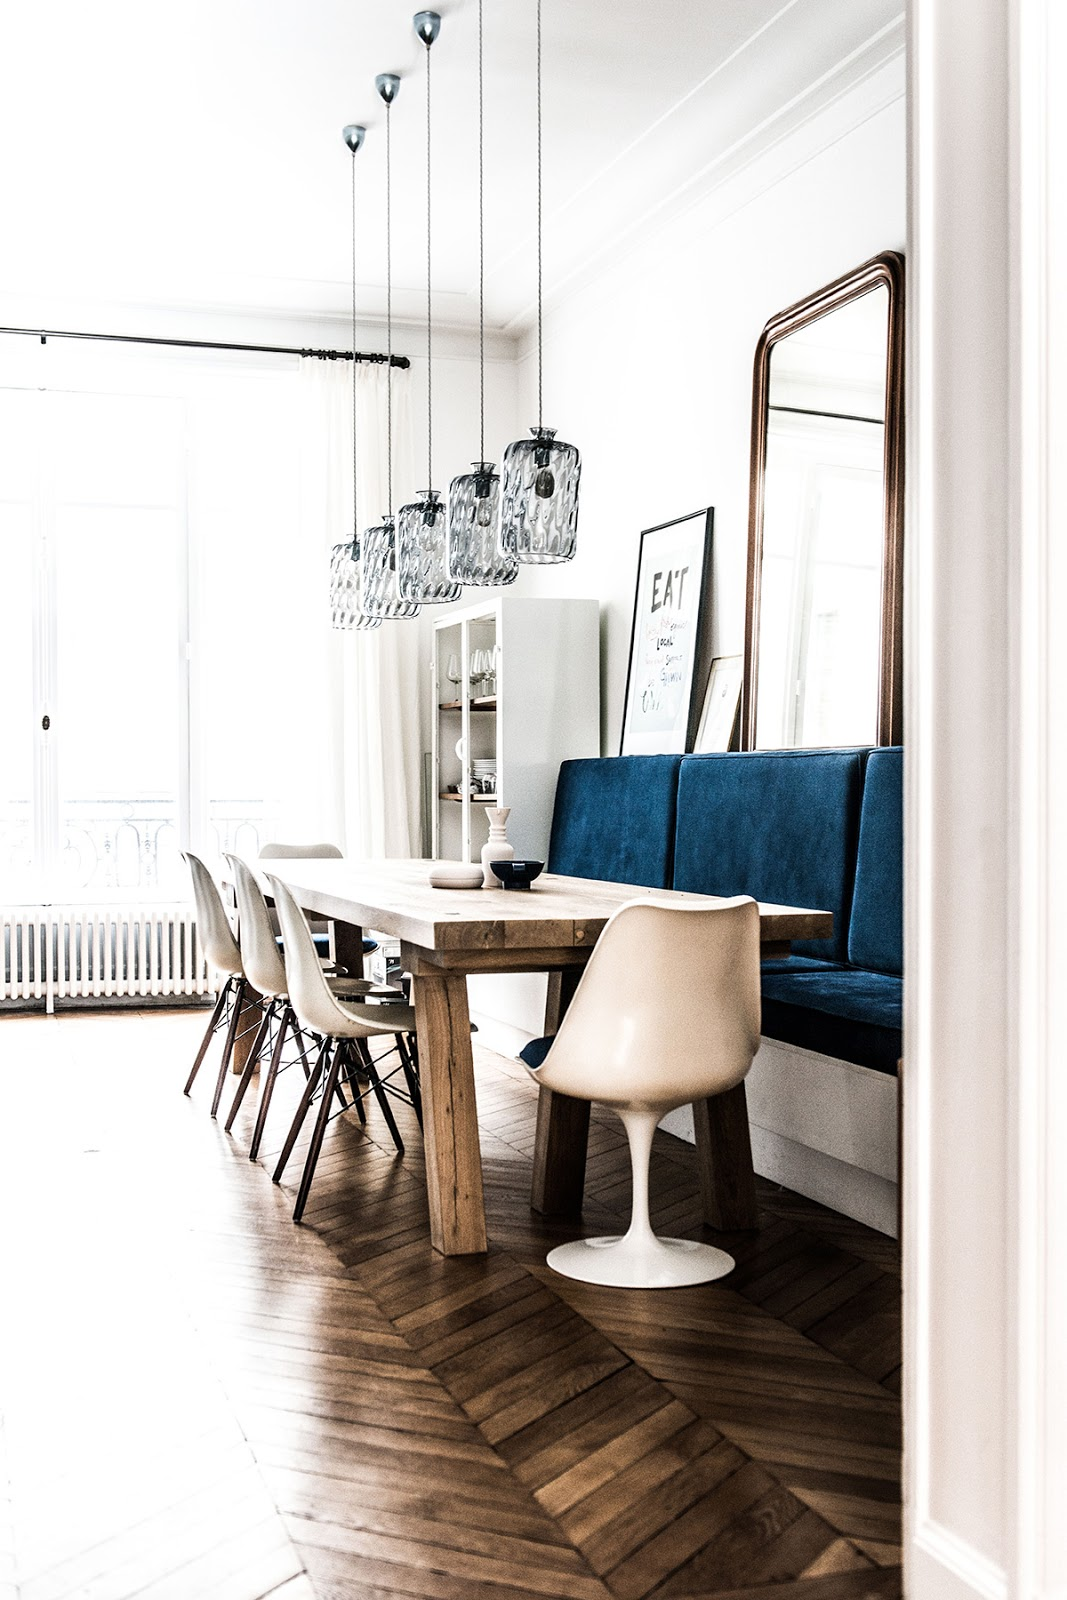 bohemian and chic paris apartment with parquet floors, eames and saarinen chairs, tom dixon lamps and wallpapers, dining room